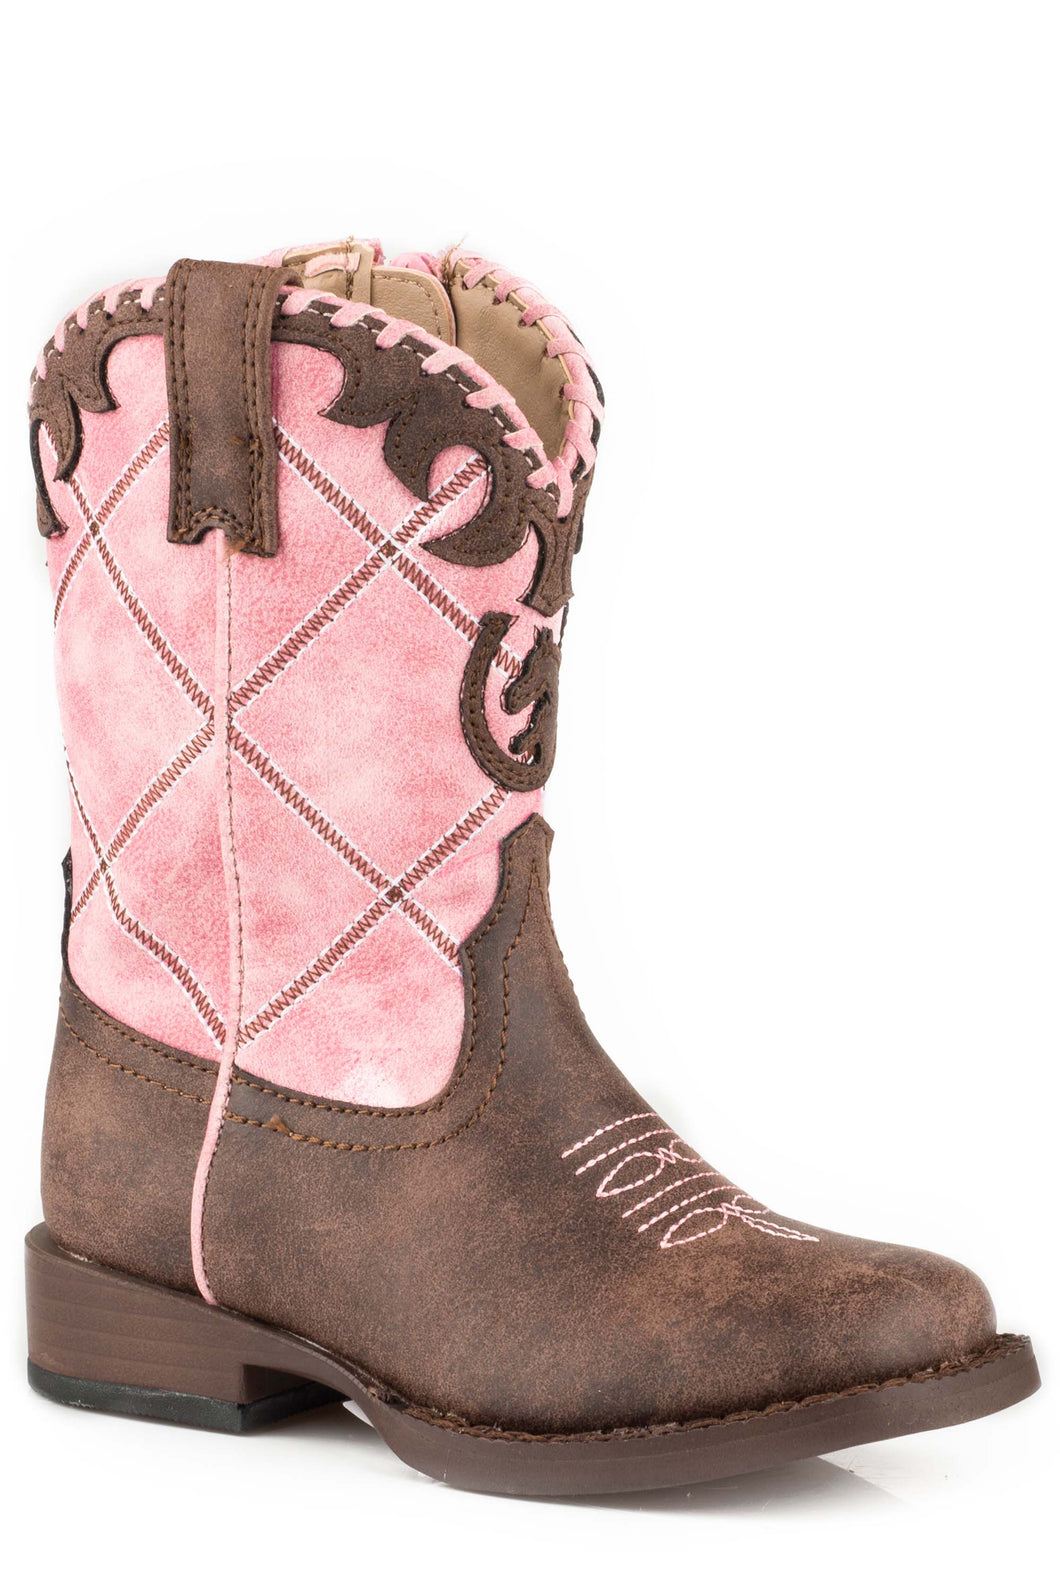 ROPER TOD LACY BROWN/PINK